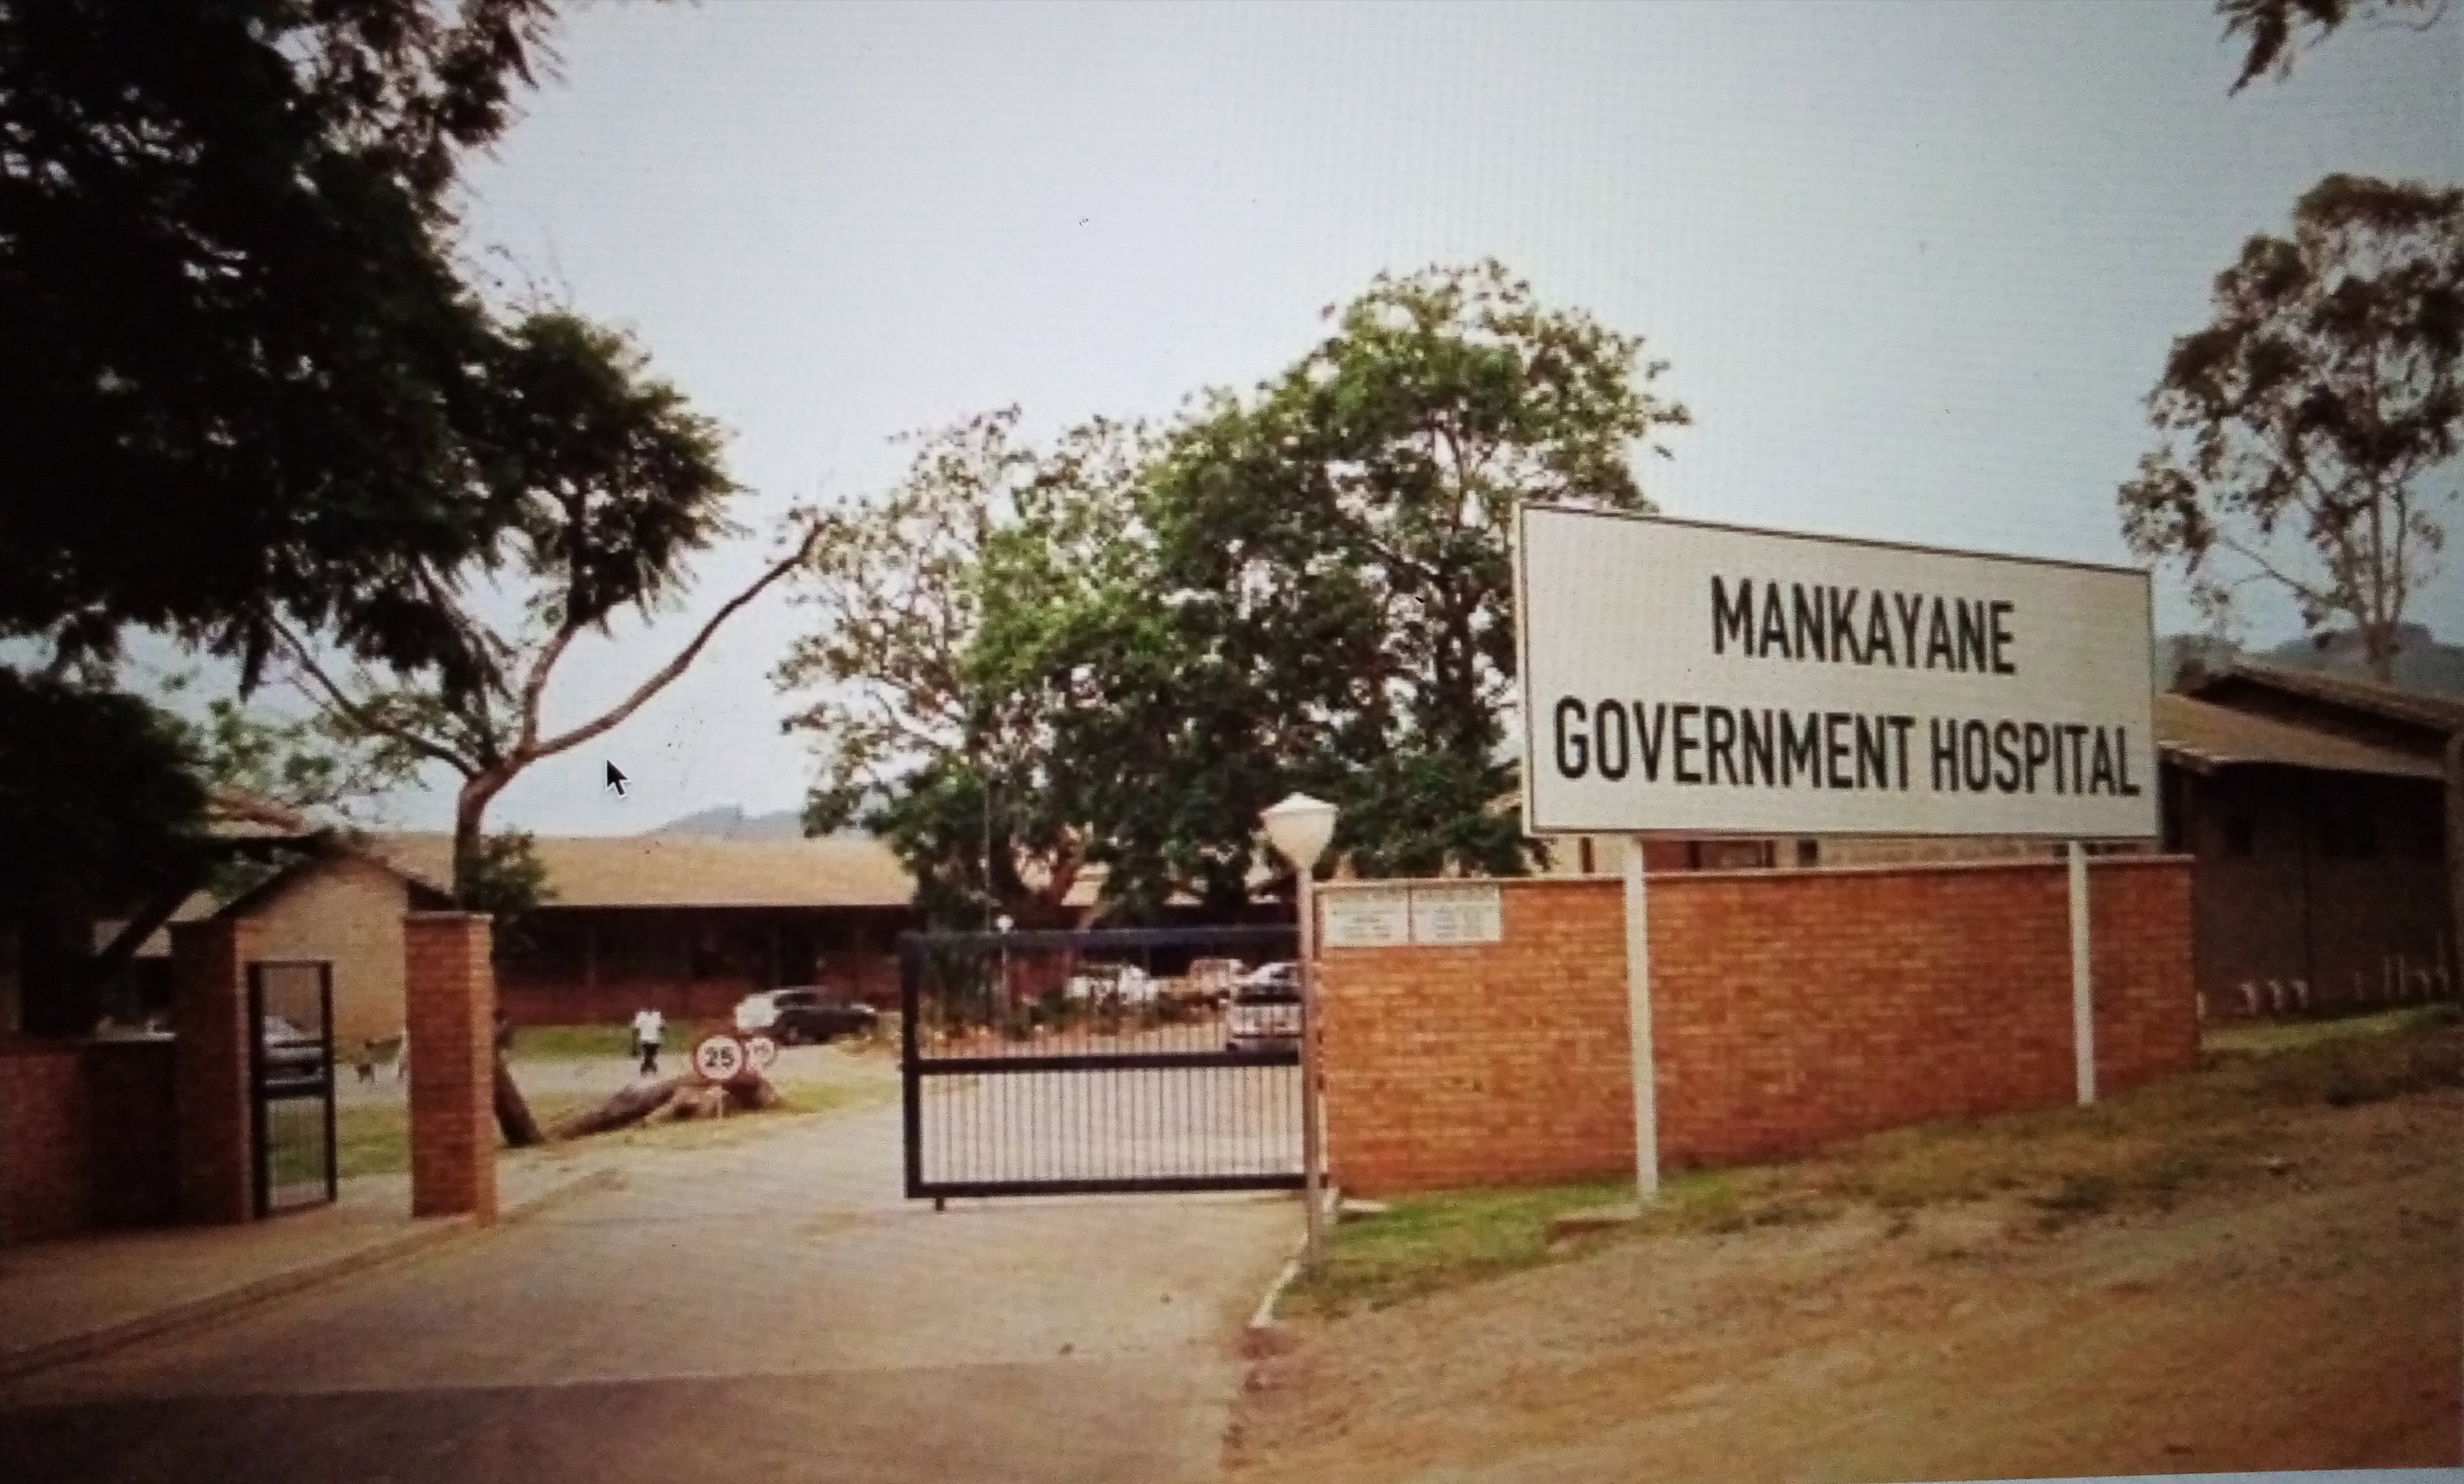 Nurses President speaks: Mankayane hospital shut-down over lack of CoronaVirus protective clothing